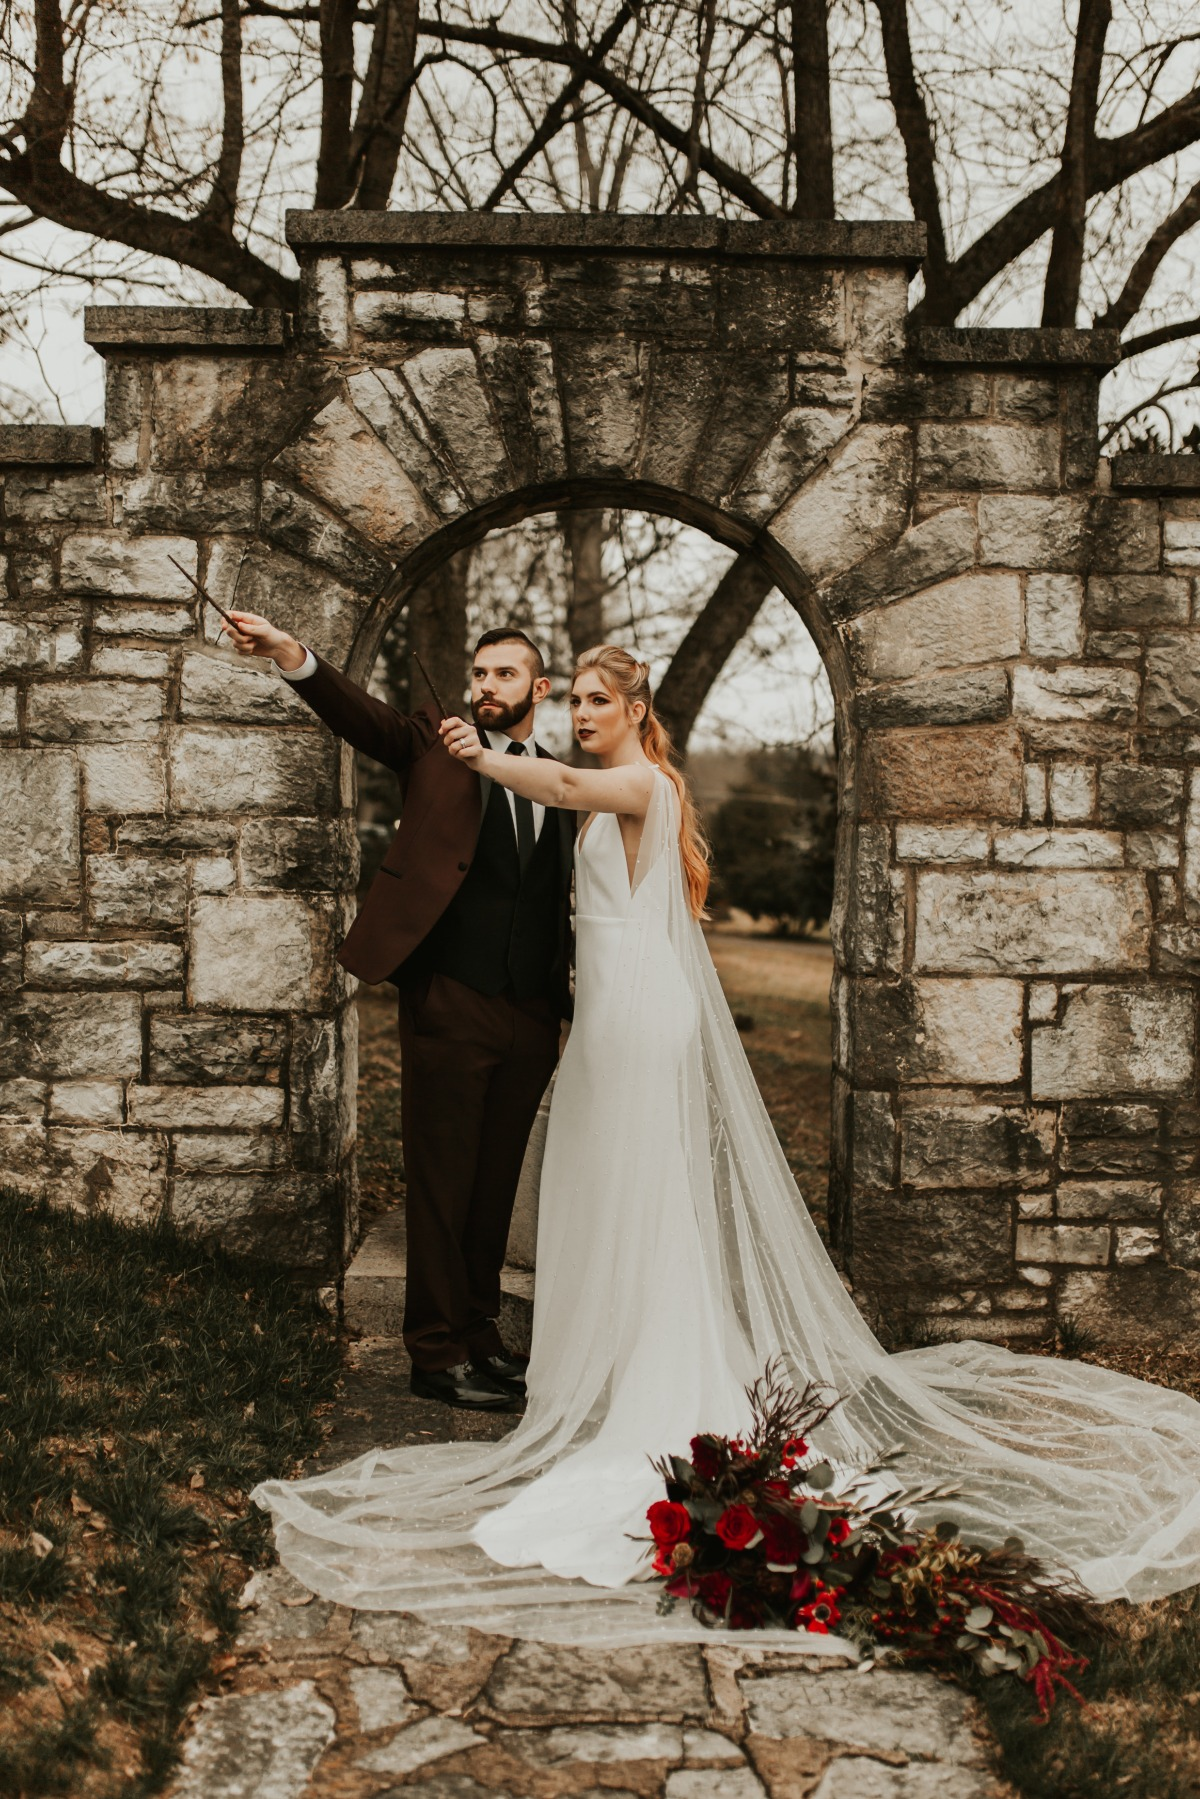 harry potter themed wedding photo ideas